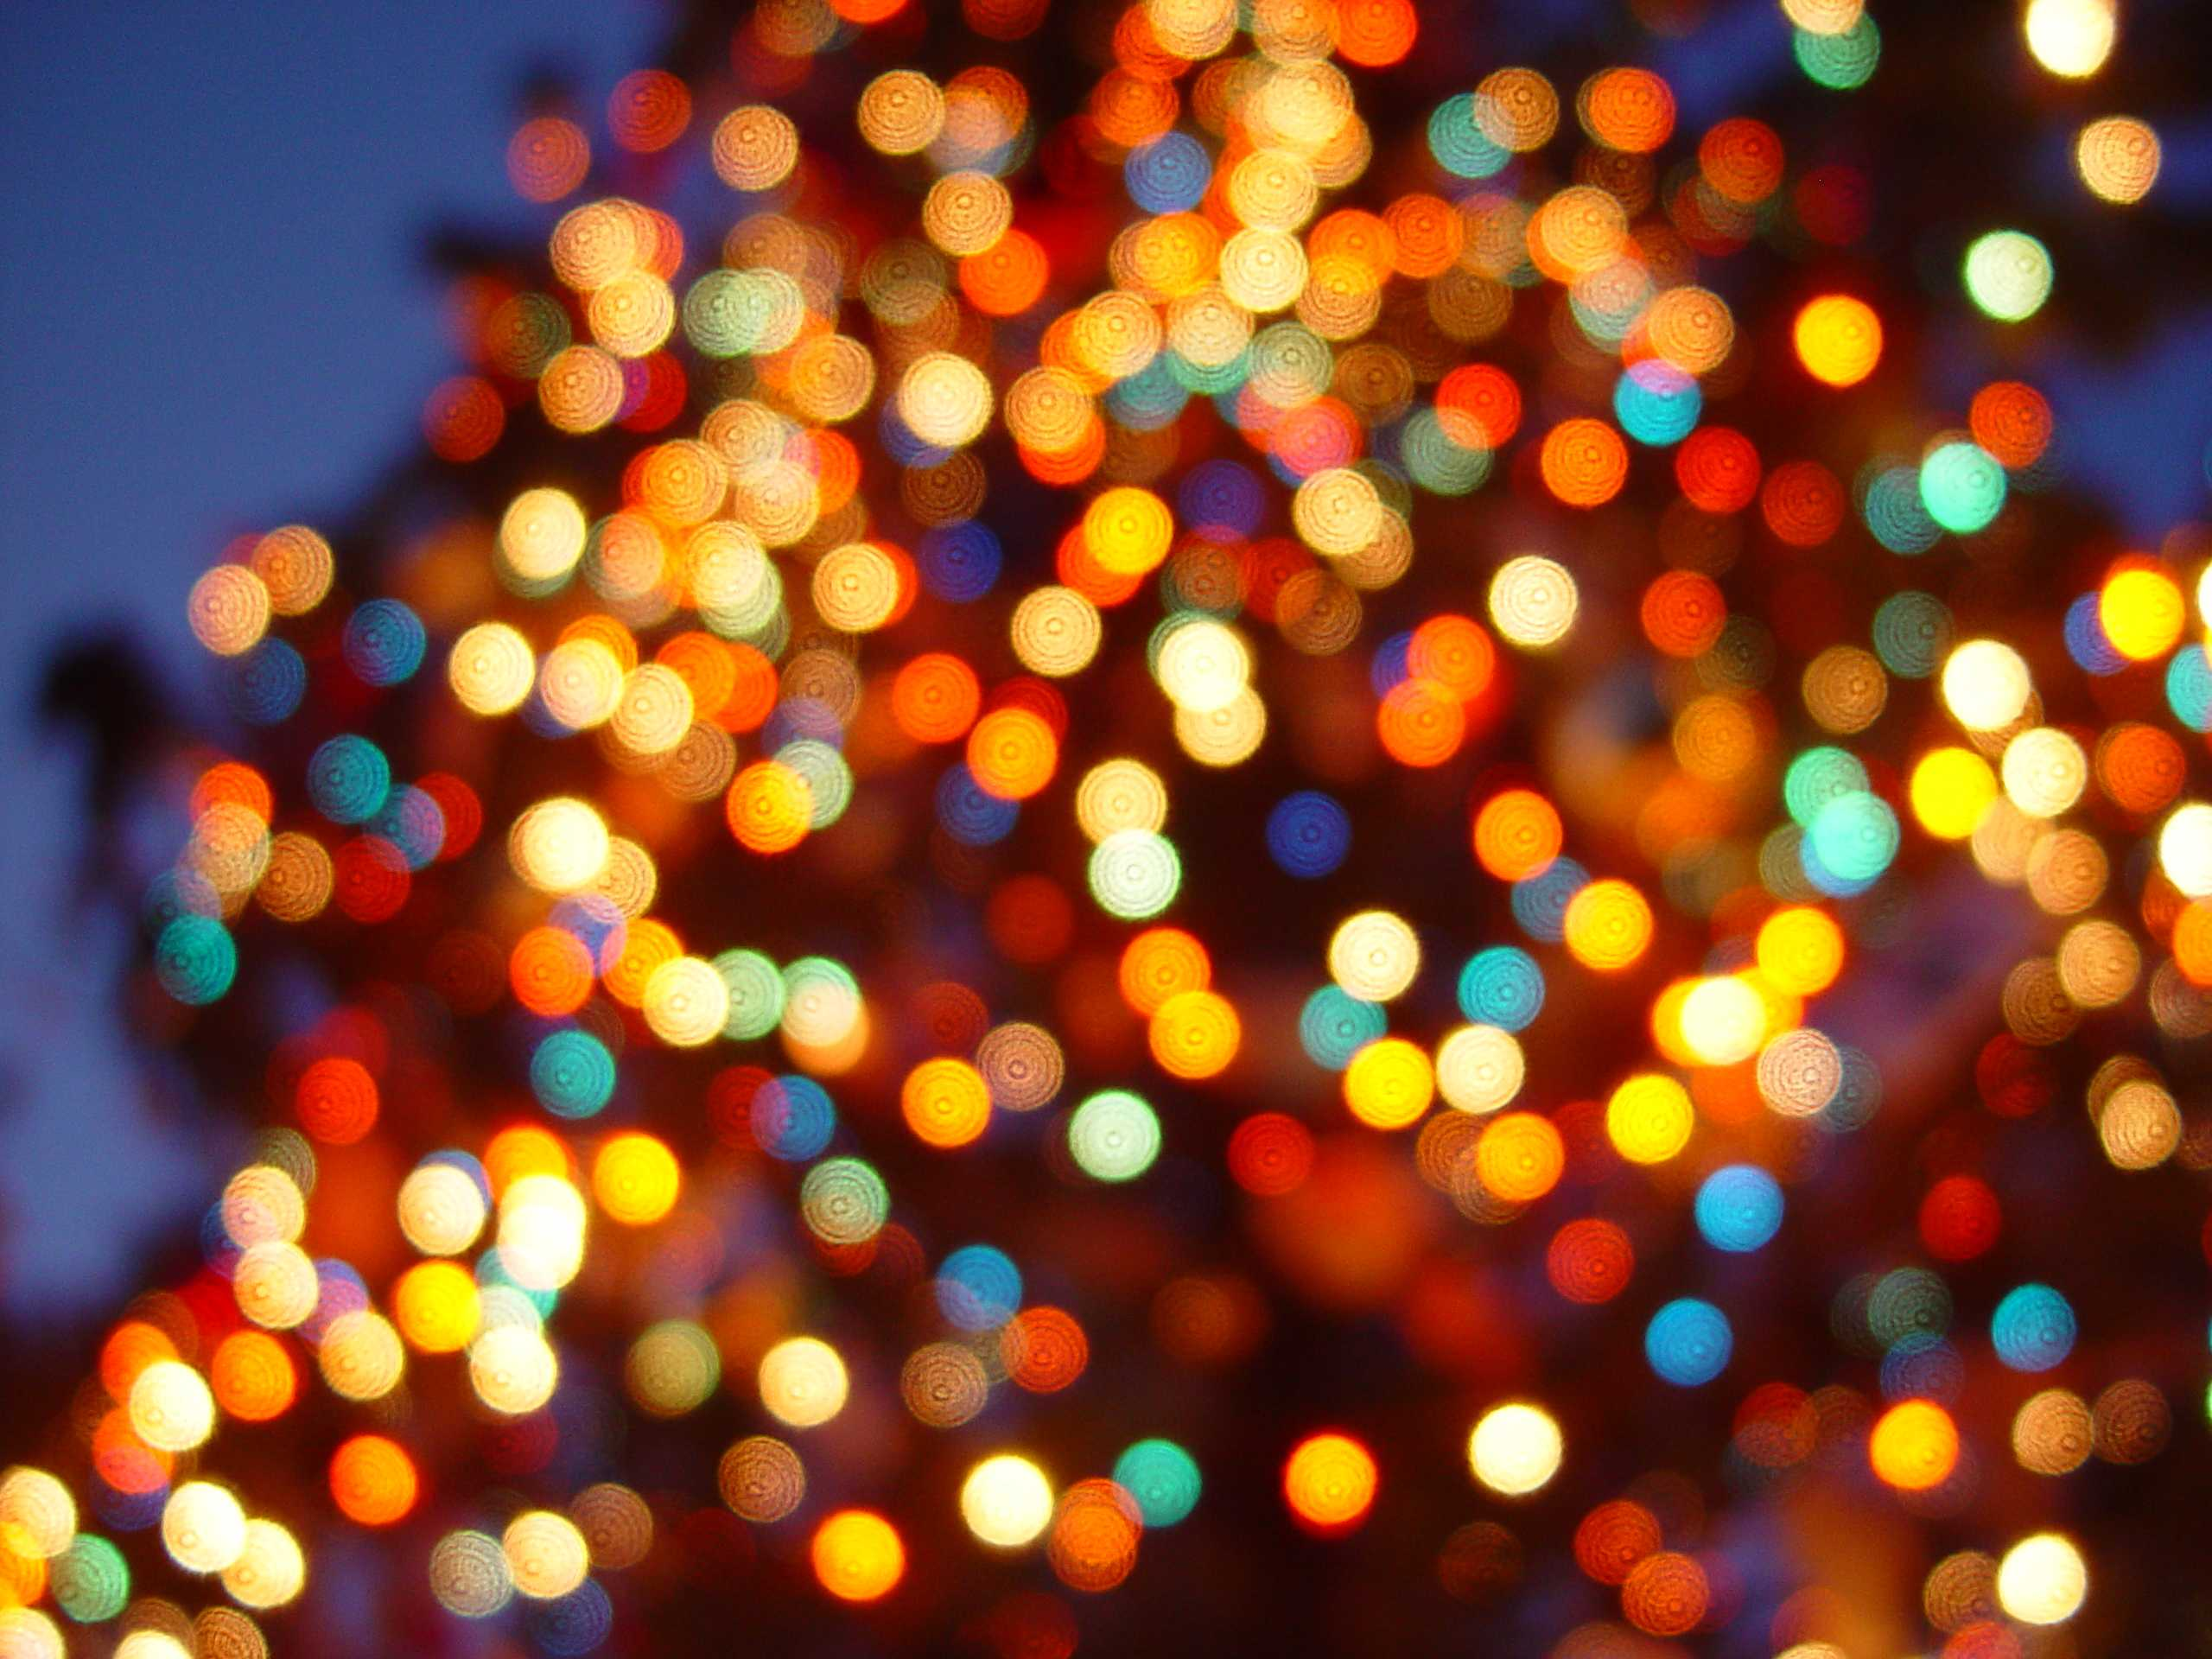 Local's Guide: Where to see lights